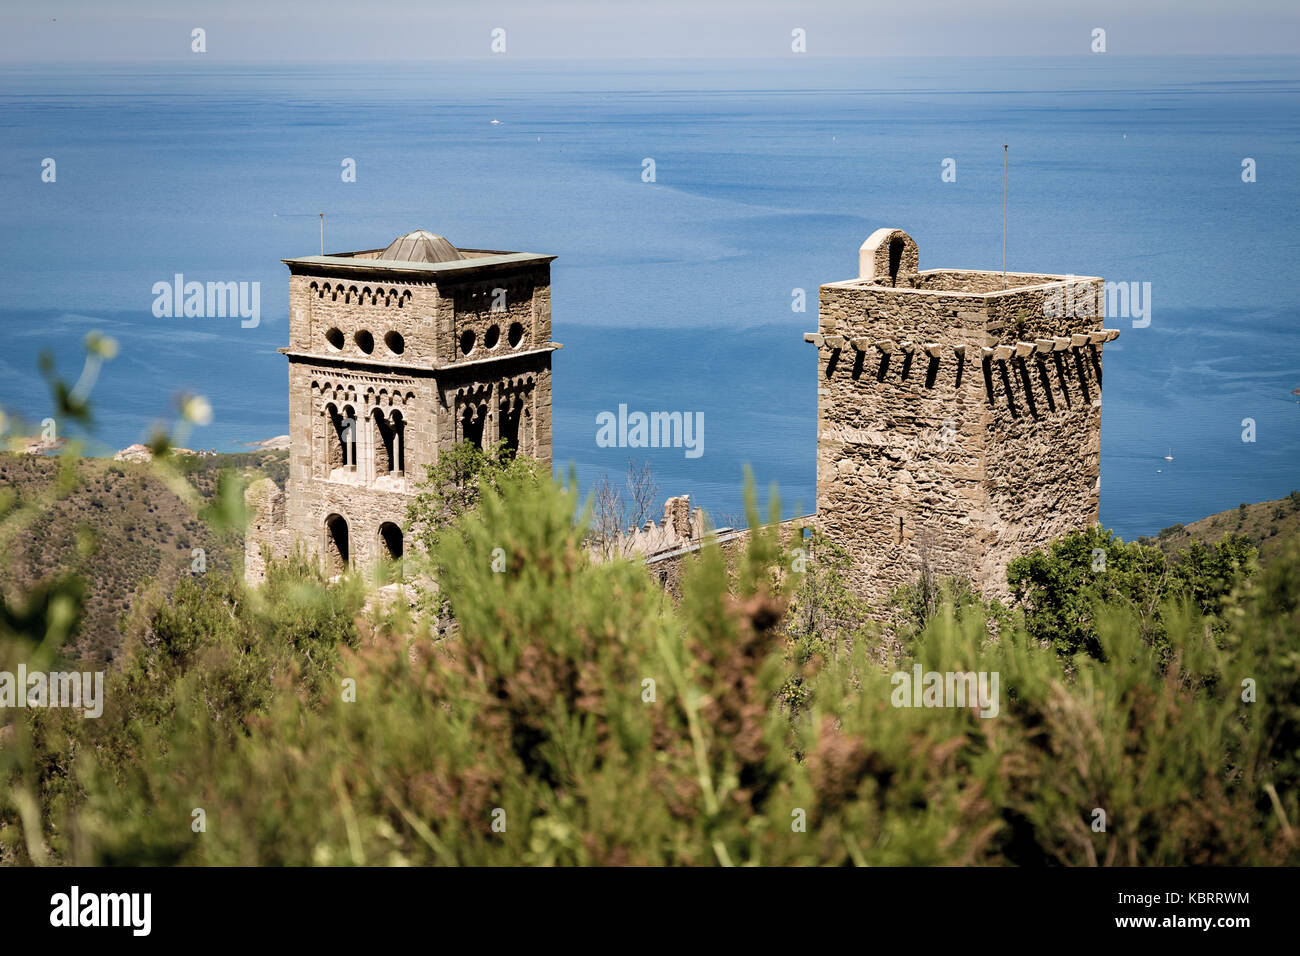 Bushes on the foreground and monastery of Sant Pere de Rodes in backStock Photo